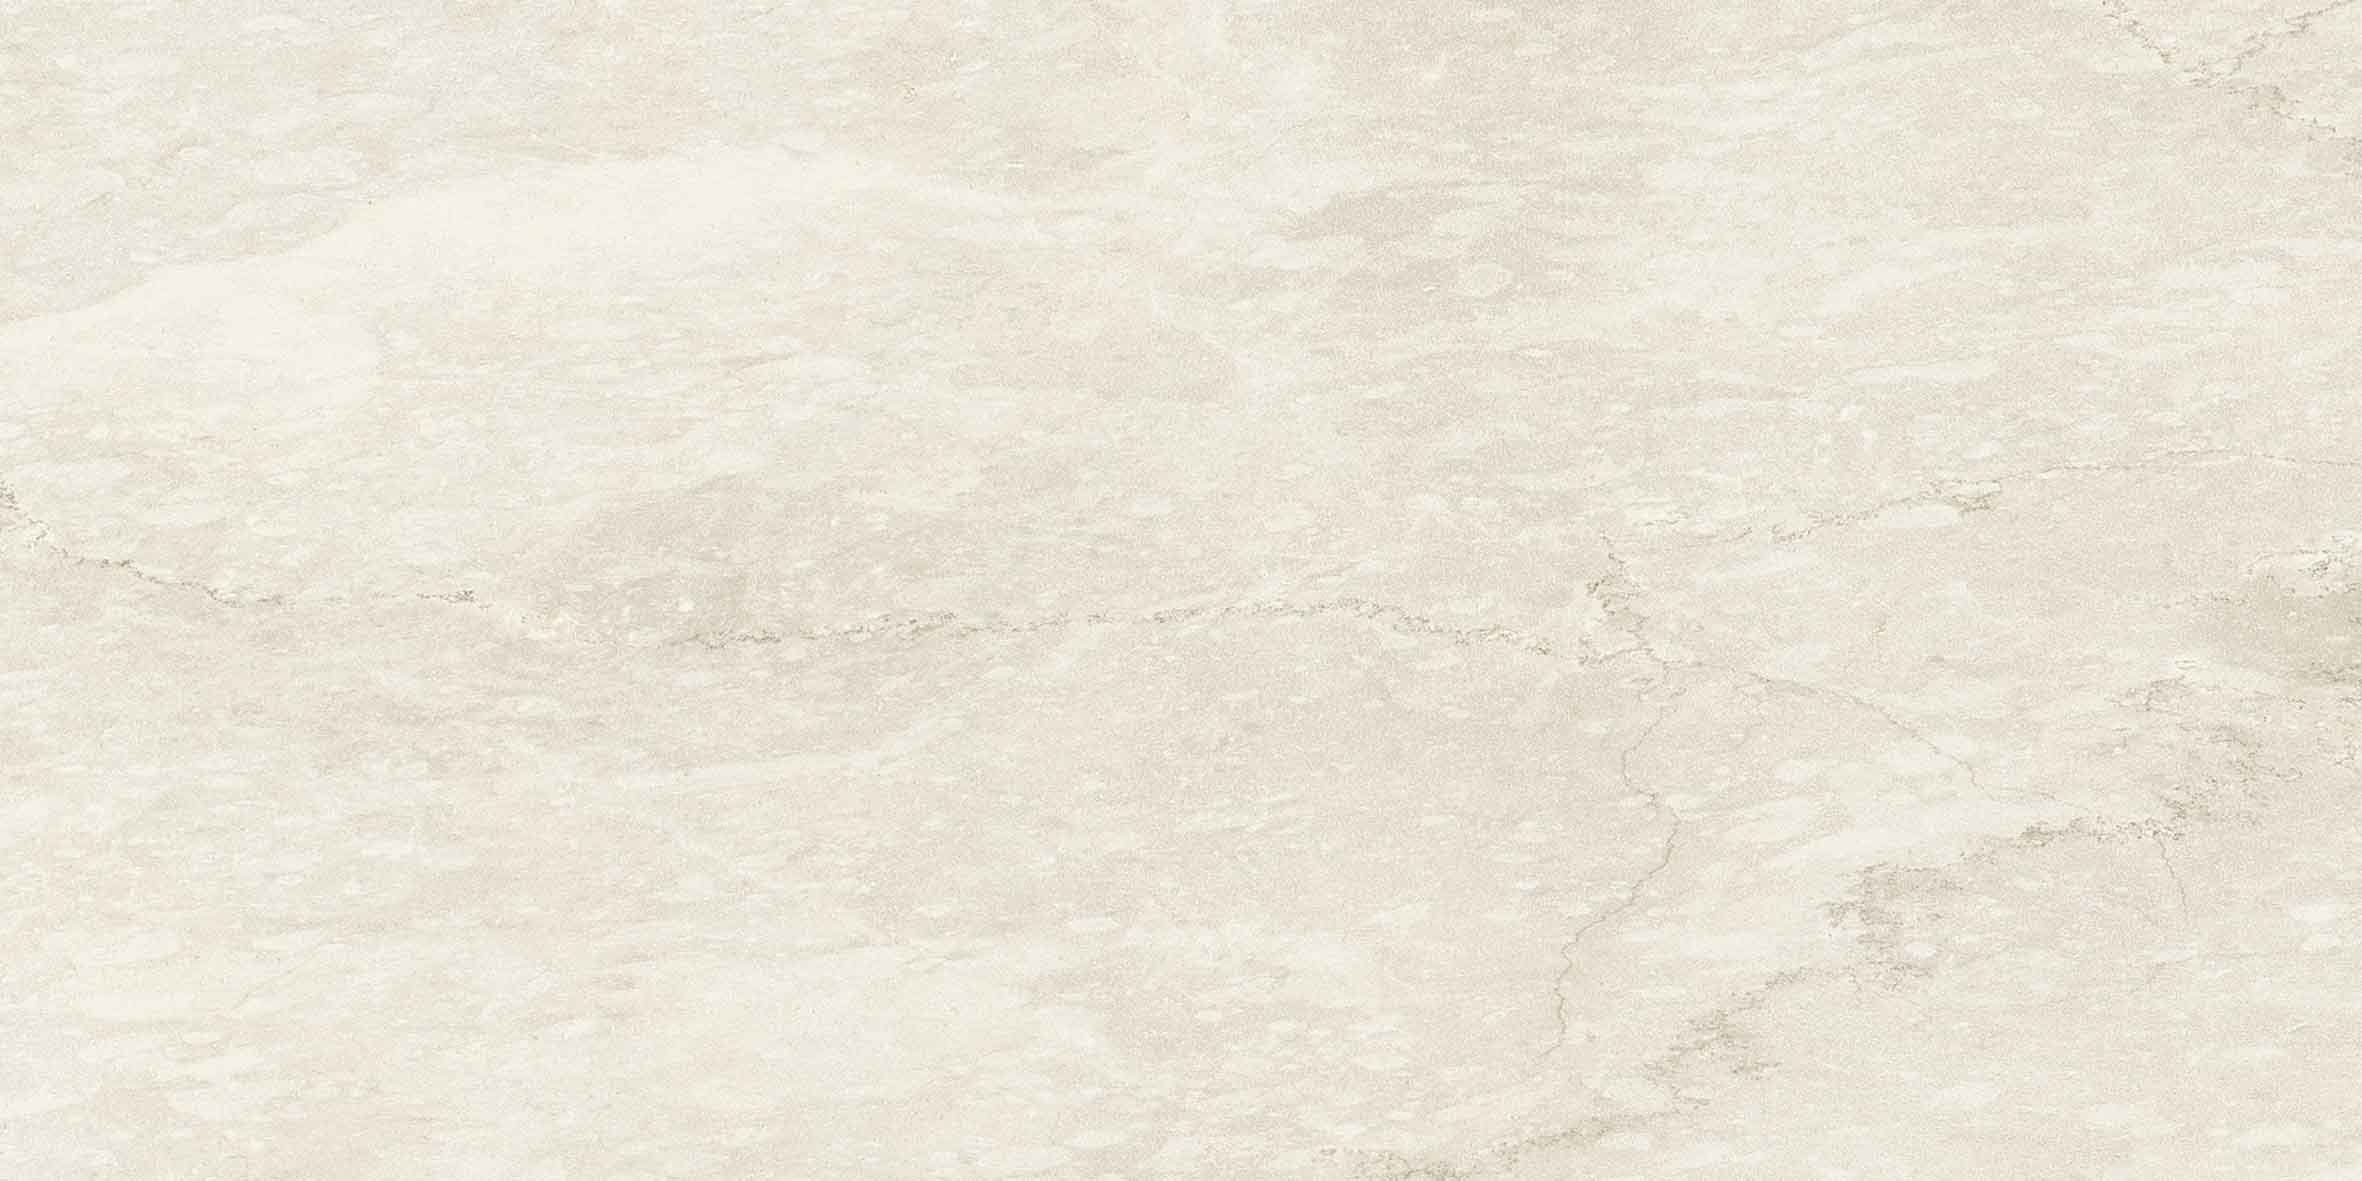 Antique Marble Imperial Marble 04 Glossy 10mm 60 x 120